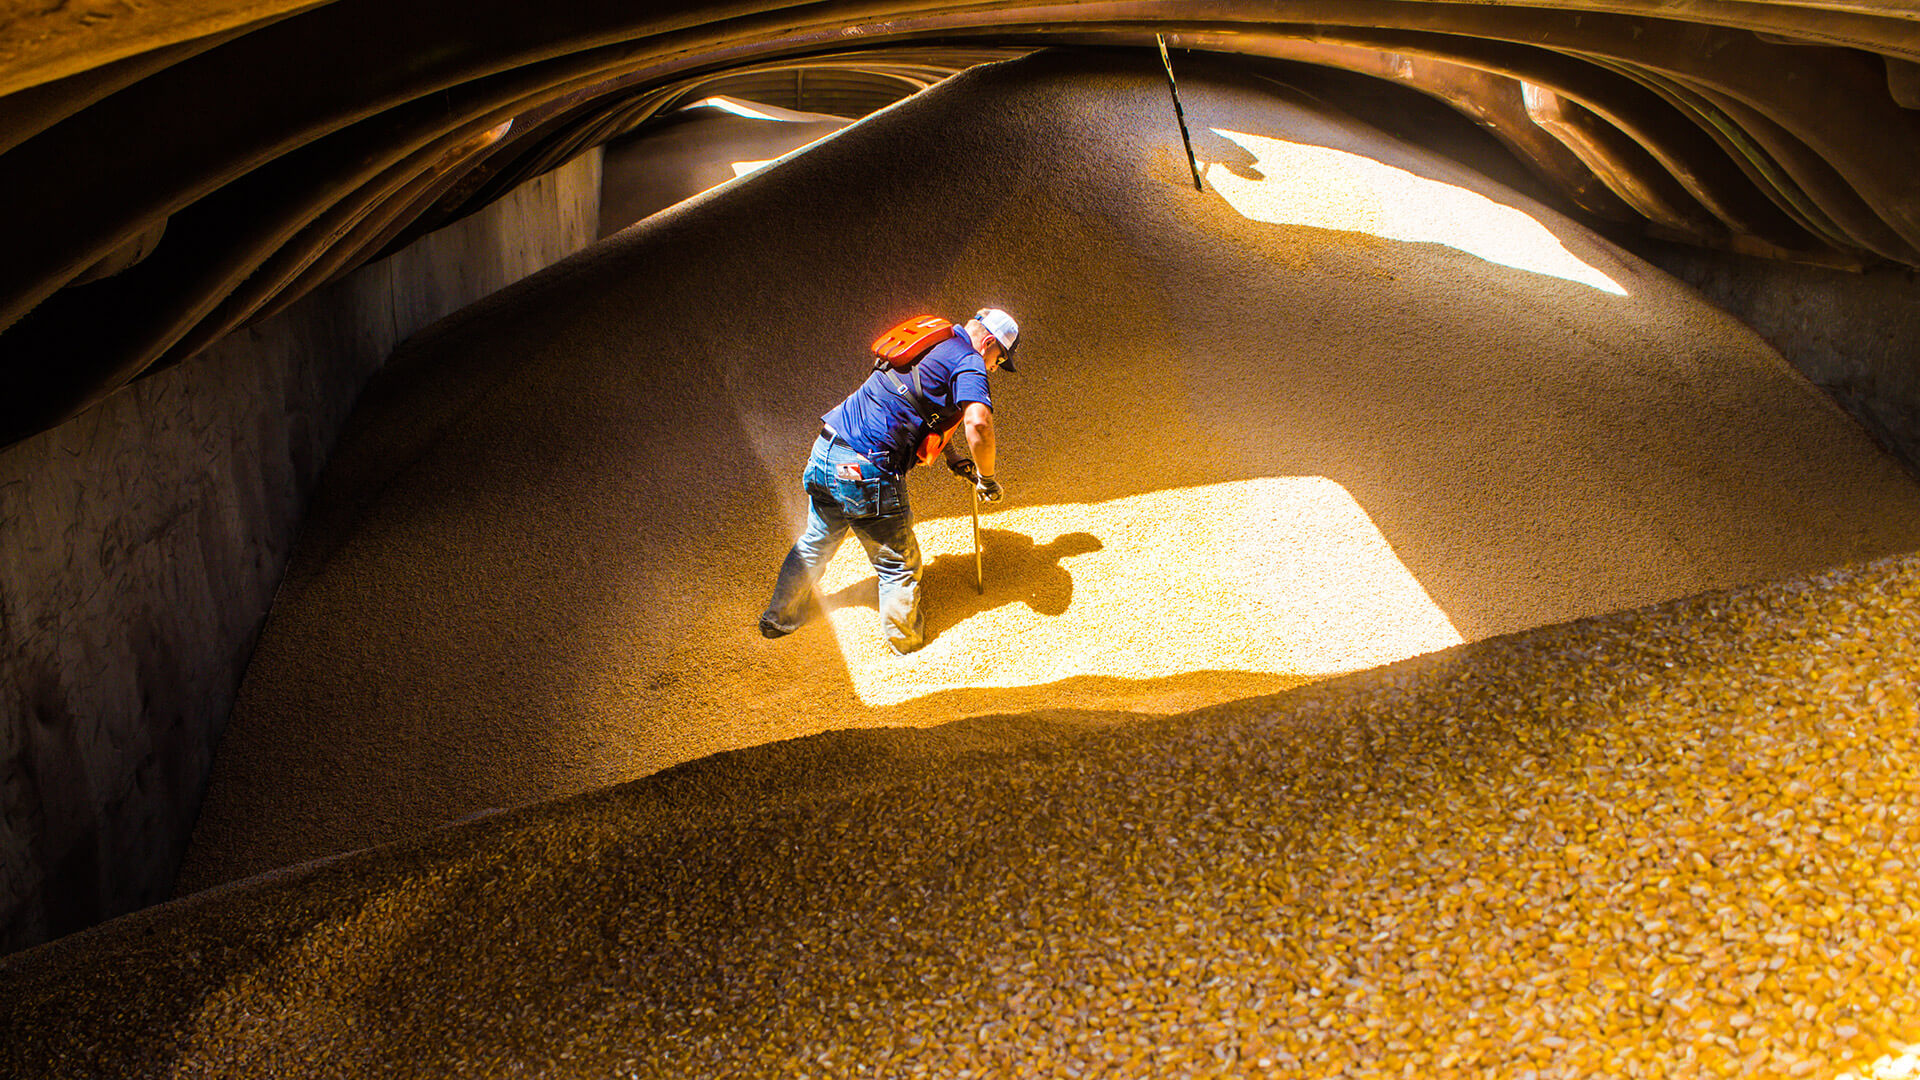 man standing in a pile of corn inspecting the quality